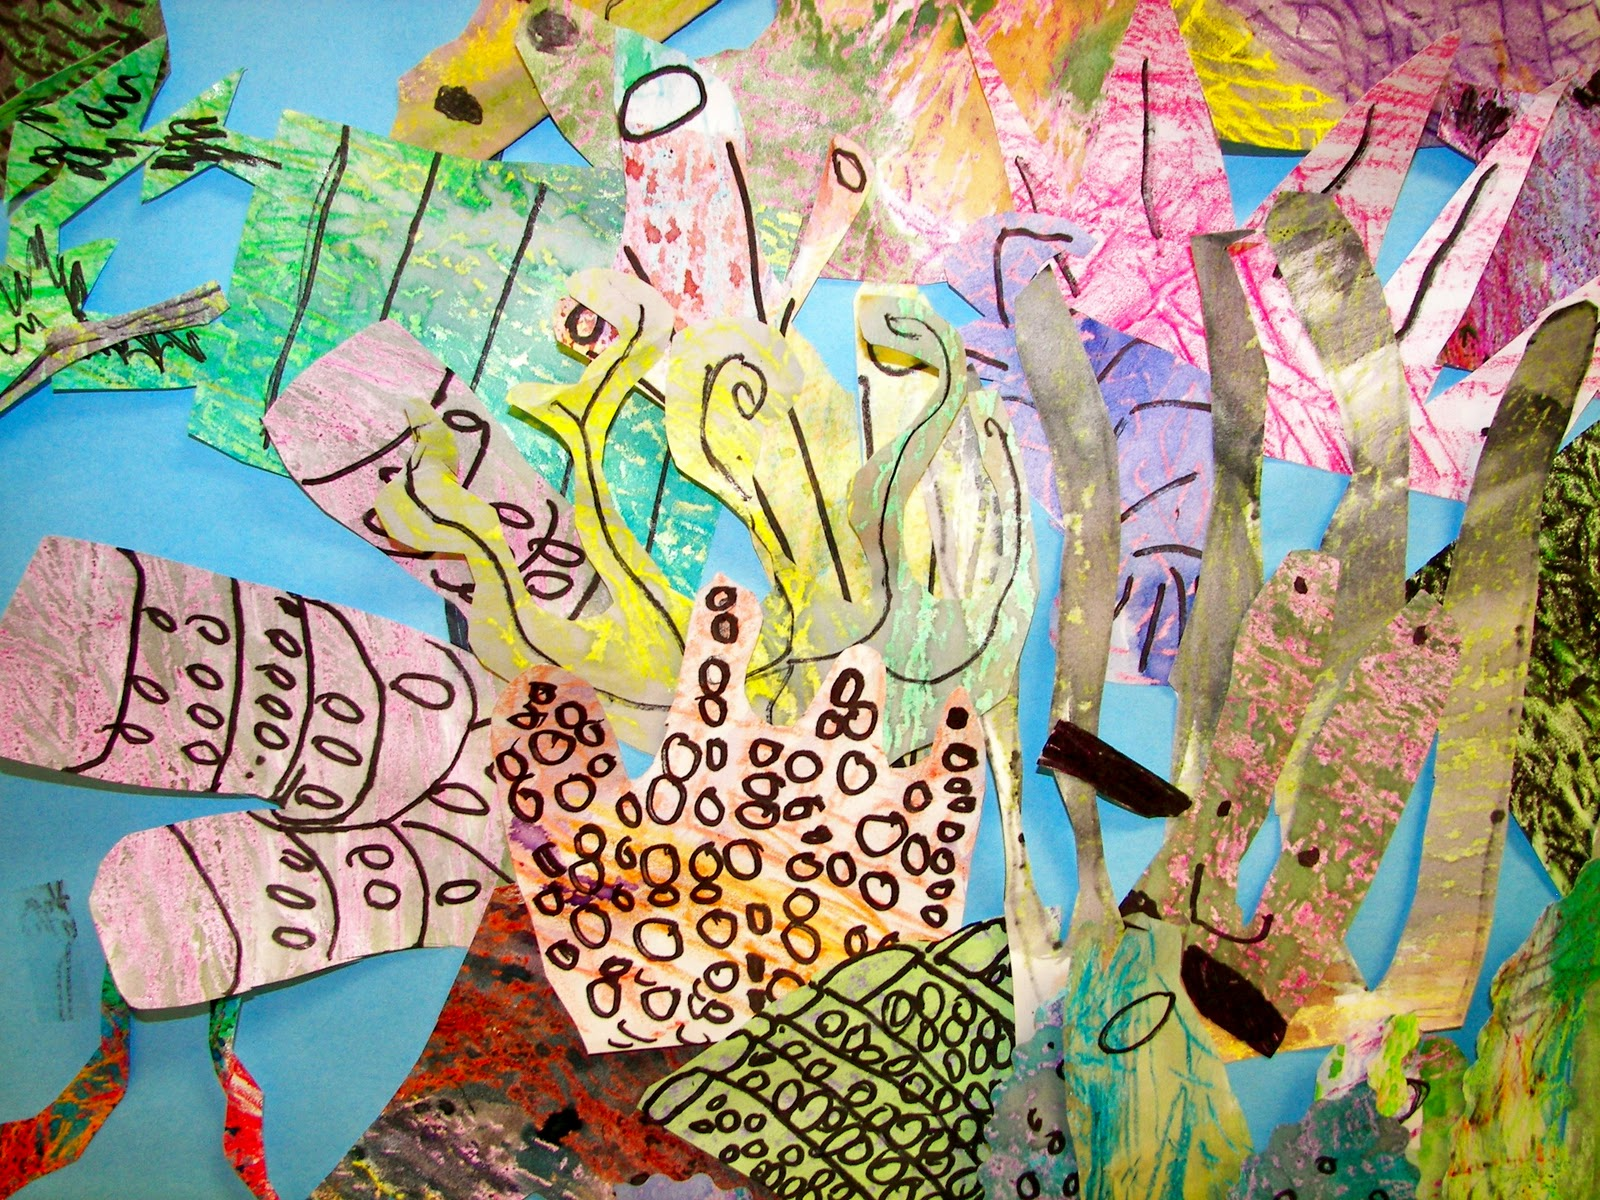 Organized chaos kindergarten and 2nd grade coral reef mural for Coral reef mural